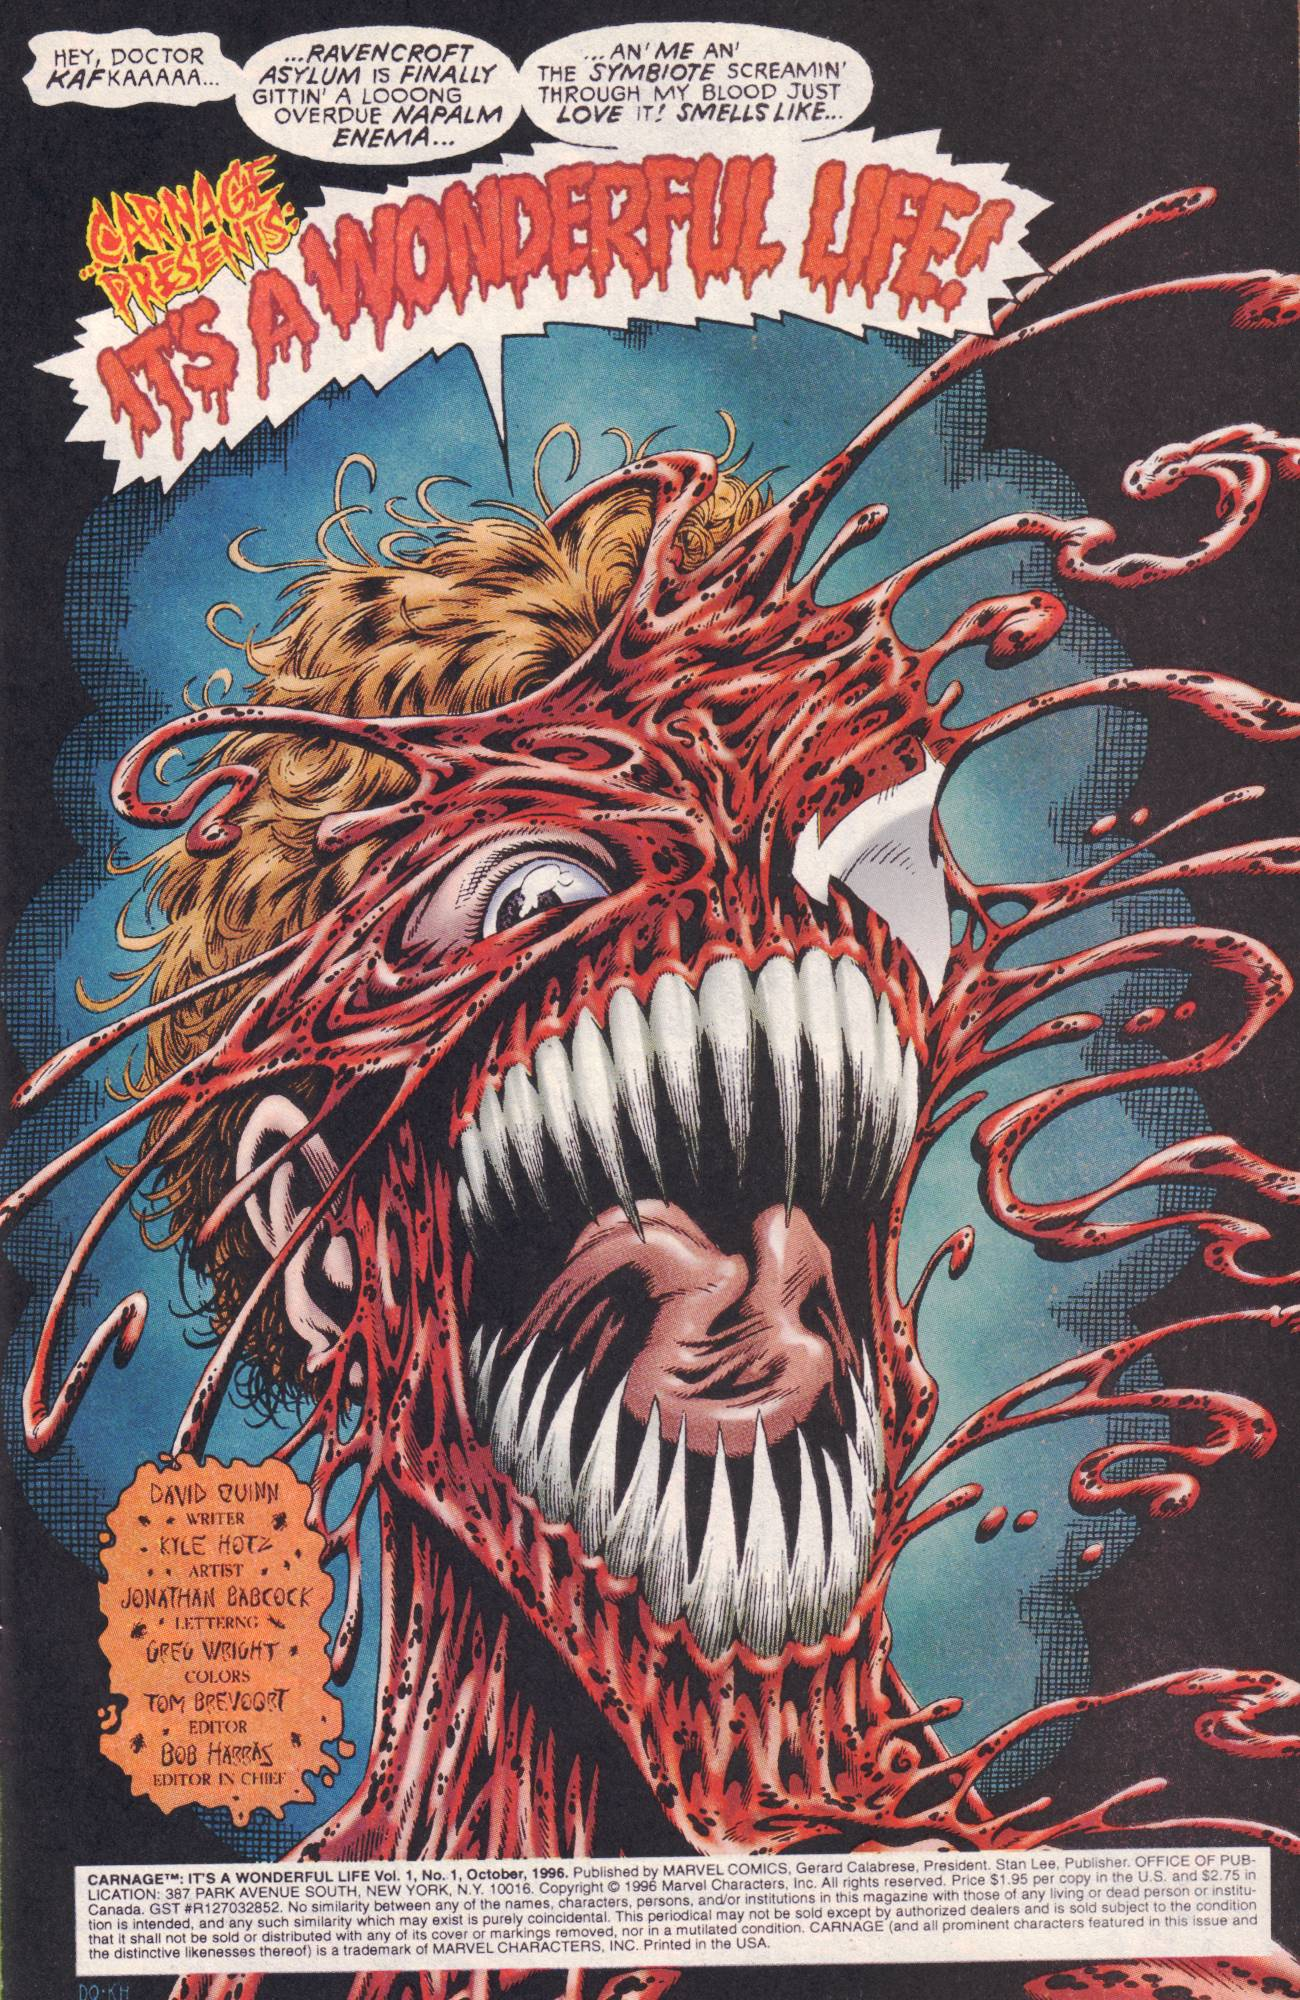 Image Carnage It 39 S A Wonderful Life Vol 1 1 Comic Book Art Wiki Fandom Powered By